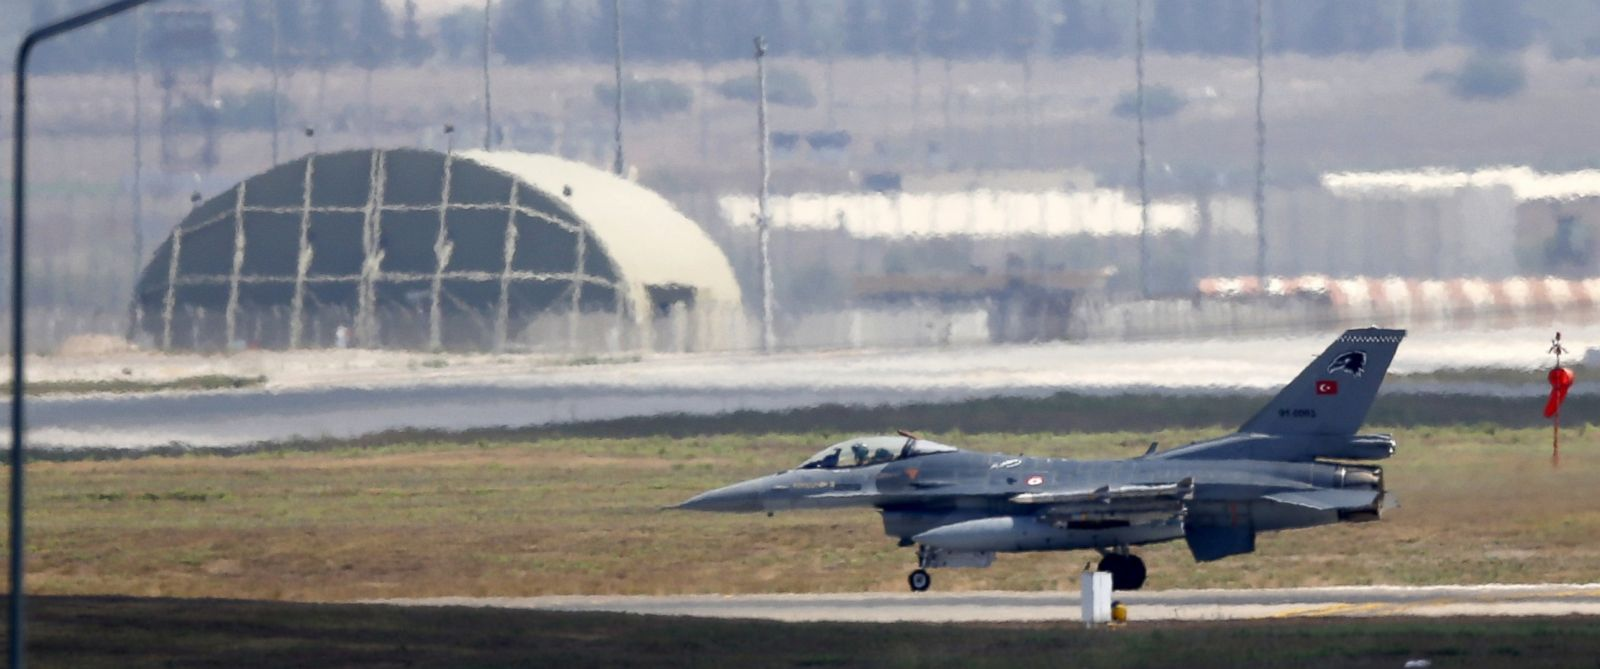 PHOTO: In this file photo, a Turkish Air Force F-16 fighter jet lands at Incirlik air base in Adana, Turkey, Aug. 11, 2015.